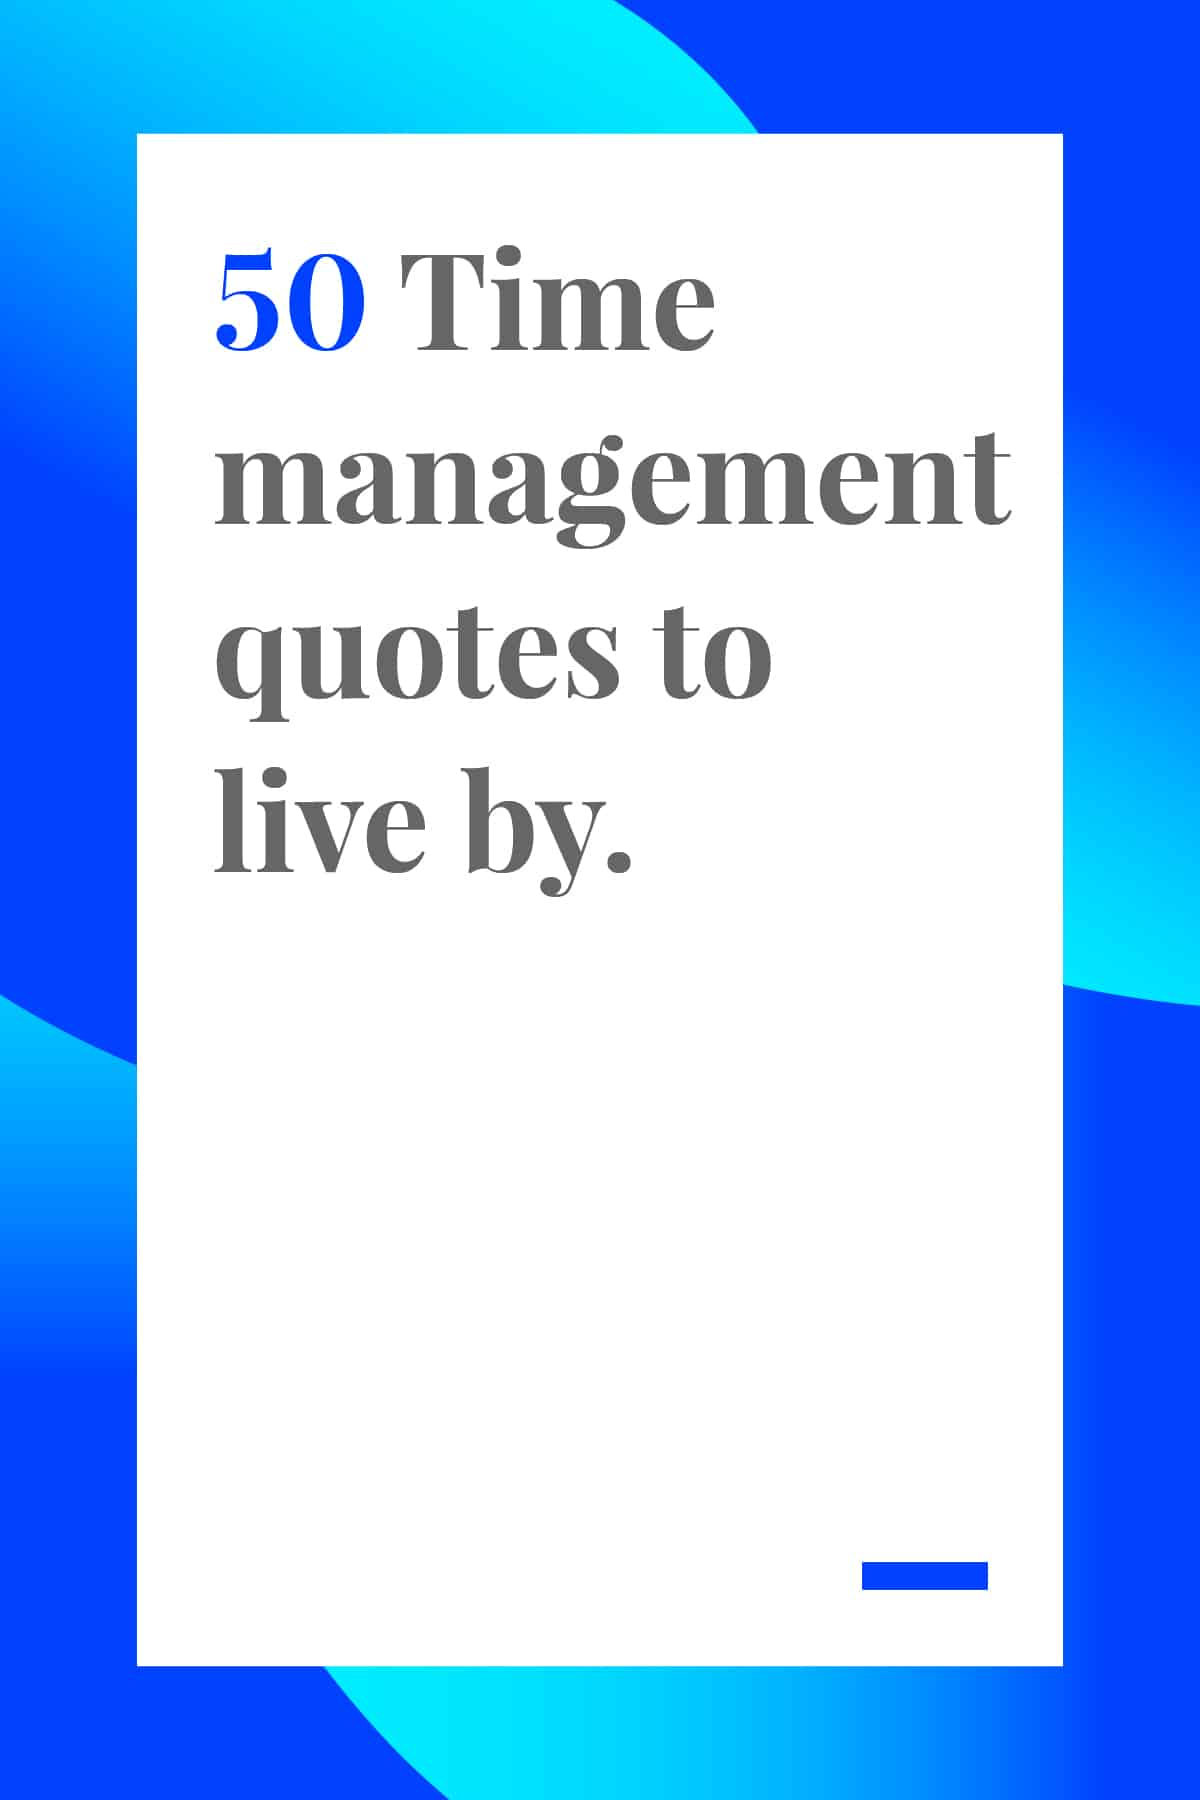 These 50 time management quotes will help you make the most of your busy days. Pin now and read later. #timemanagement